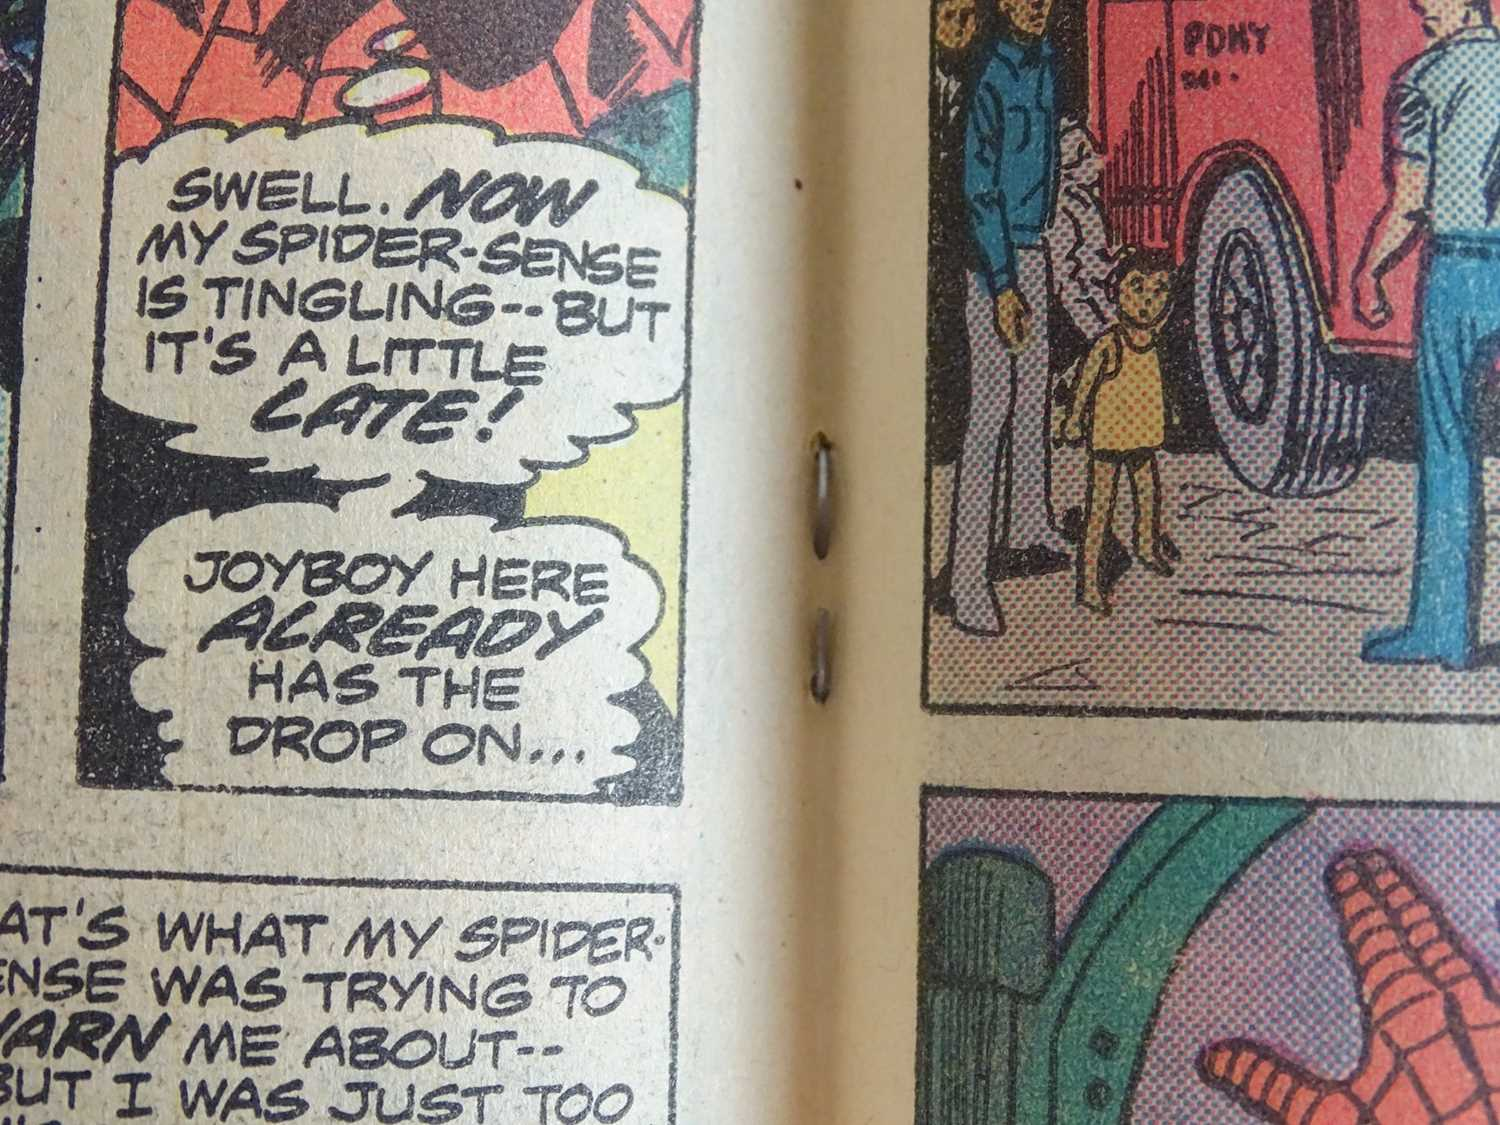 AMAZING SPIDER-MAN #162 - (1976 - MARVEL) - First full appearance of Jigsaw and Dr. Maria - Image 6 of 9